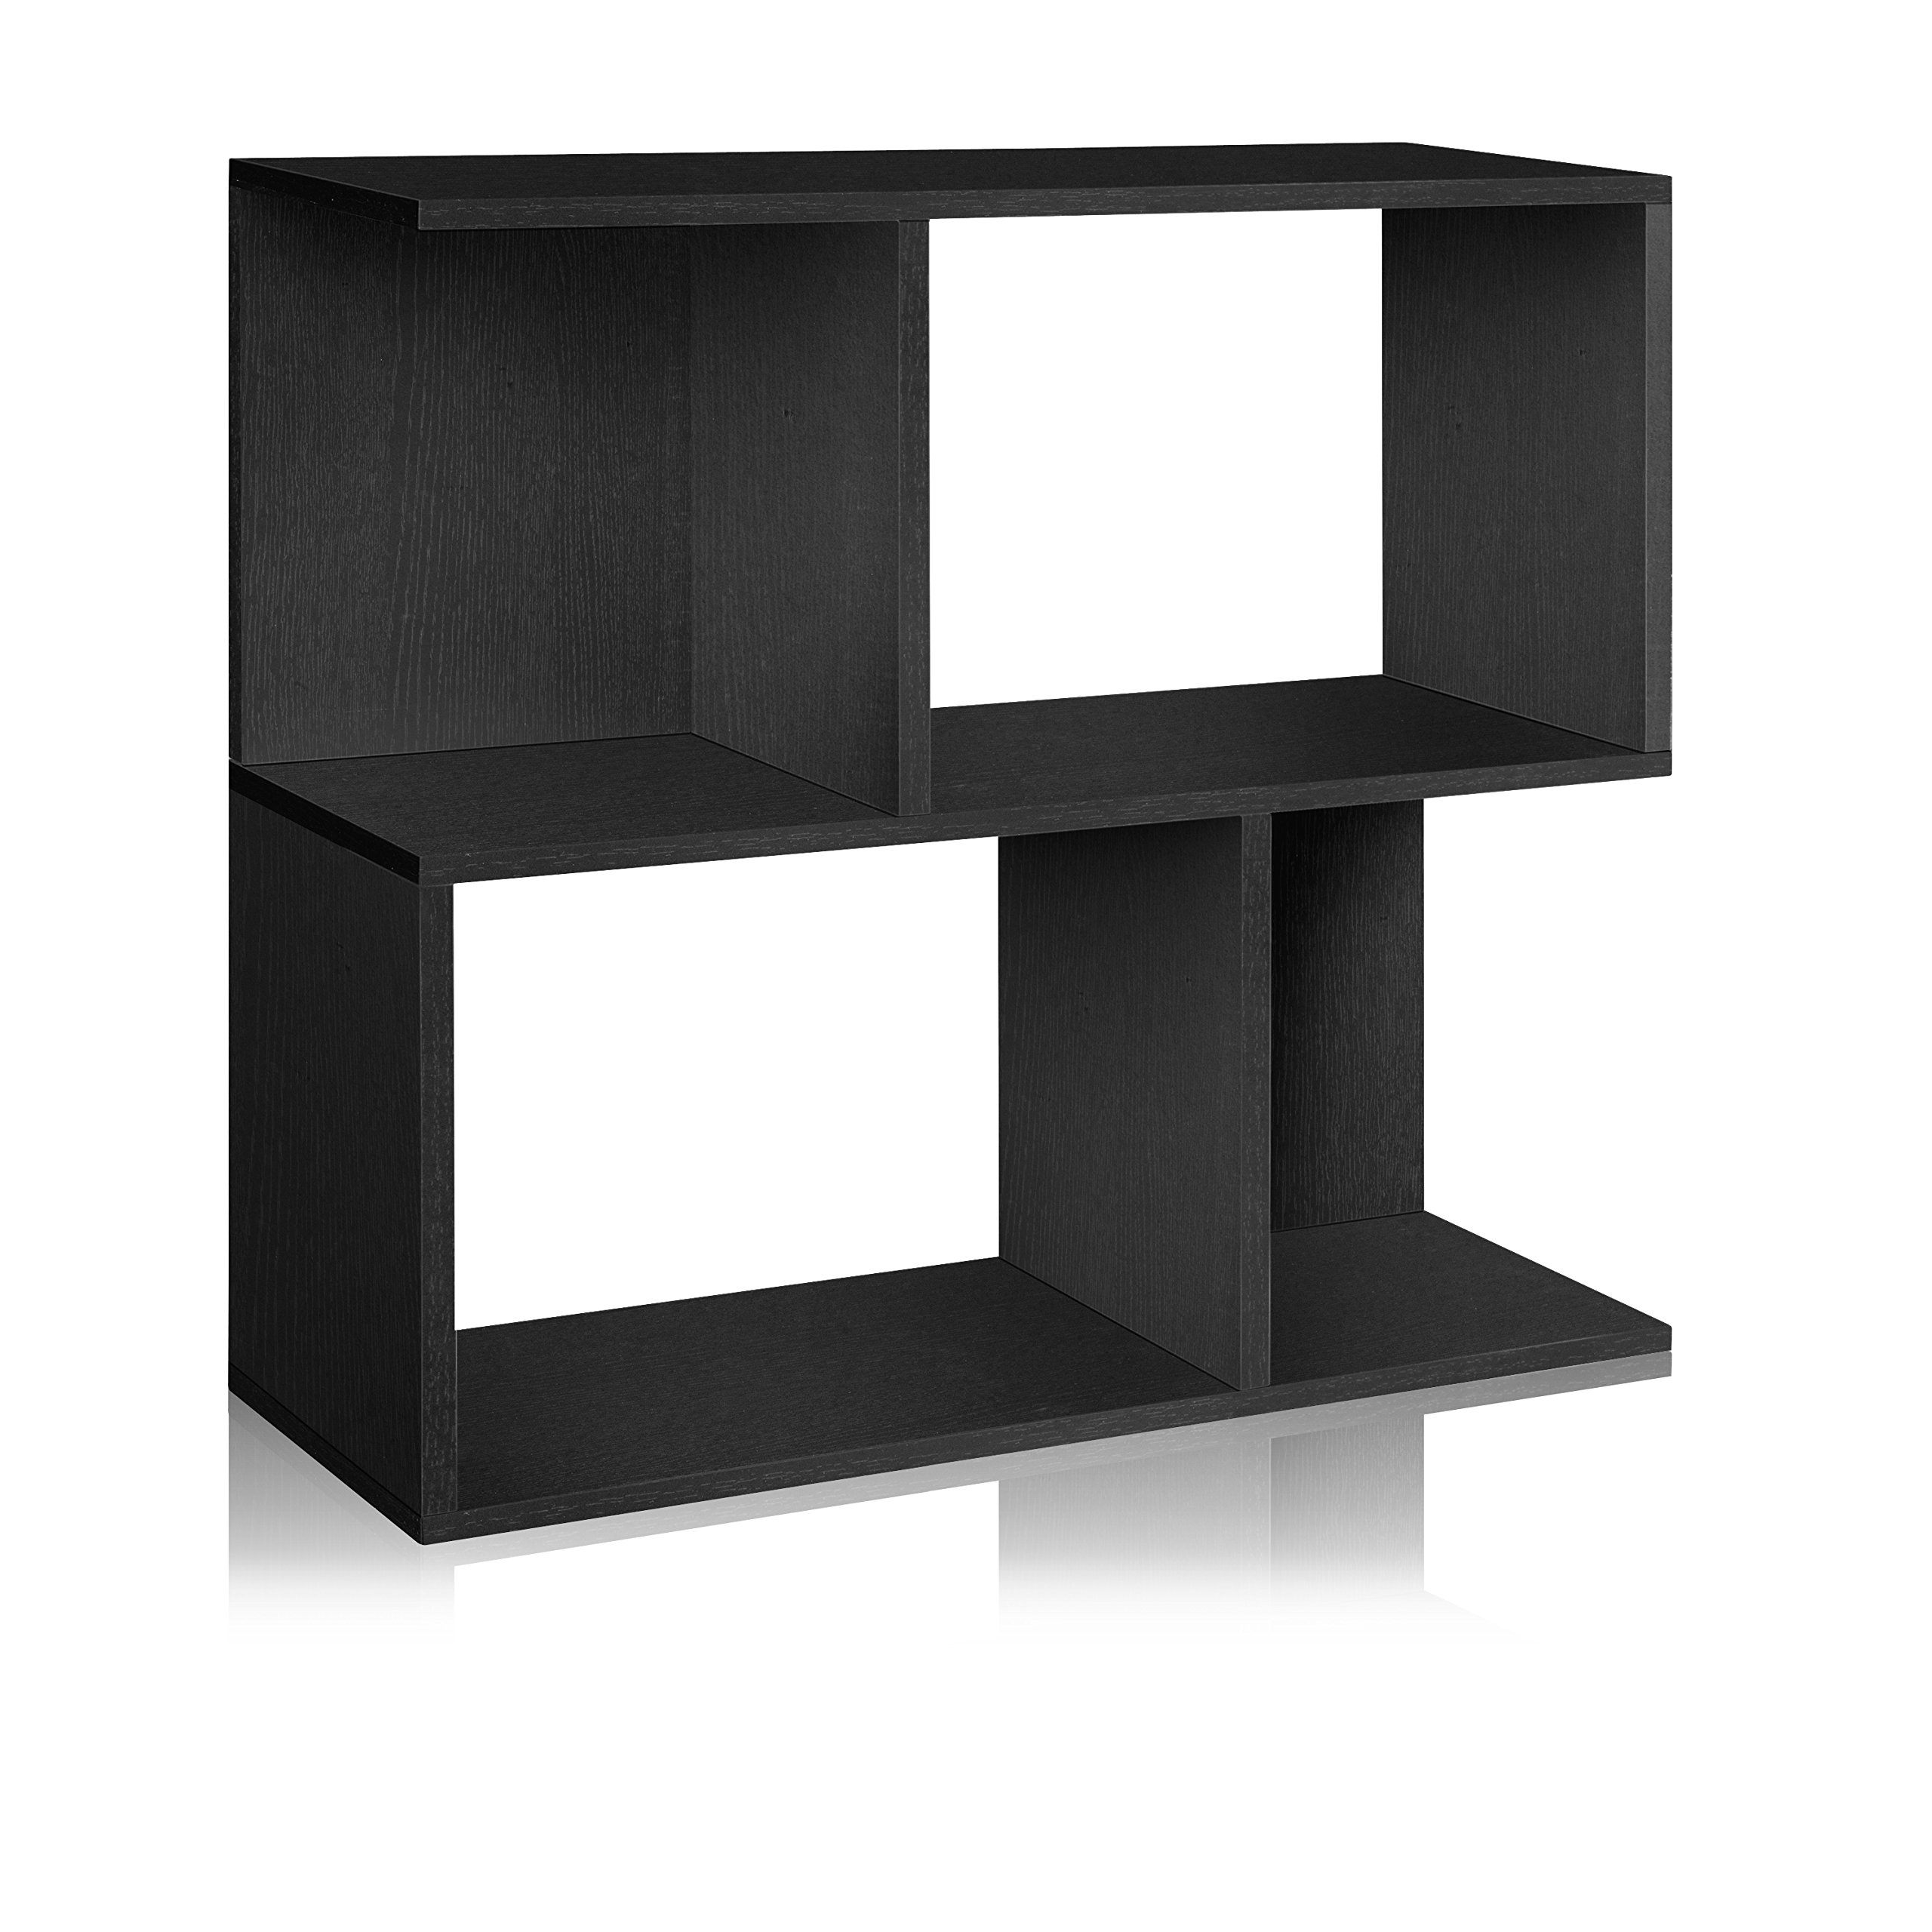 Way Basics Eco Soho Bookcase, Side Table and Storage Shelf, Black (made from sustainable non-toxic zBoard paperboard)